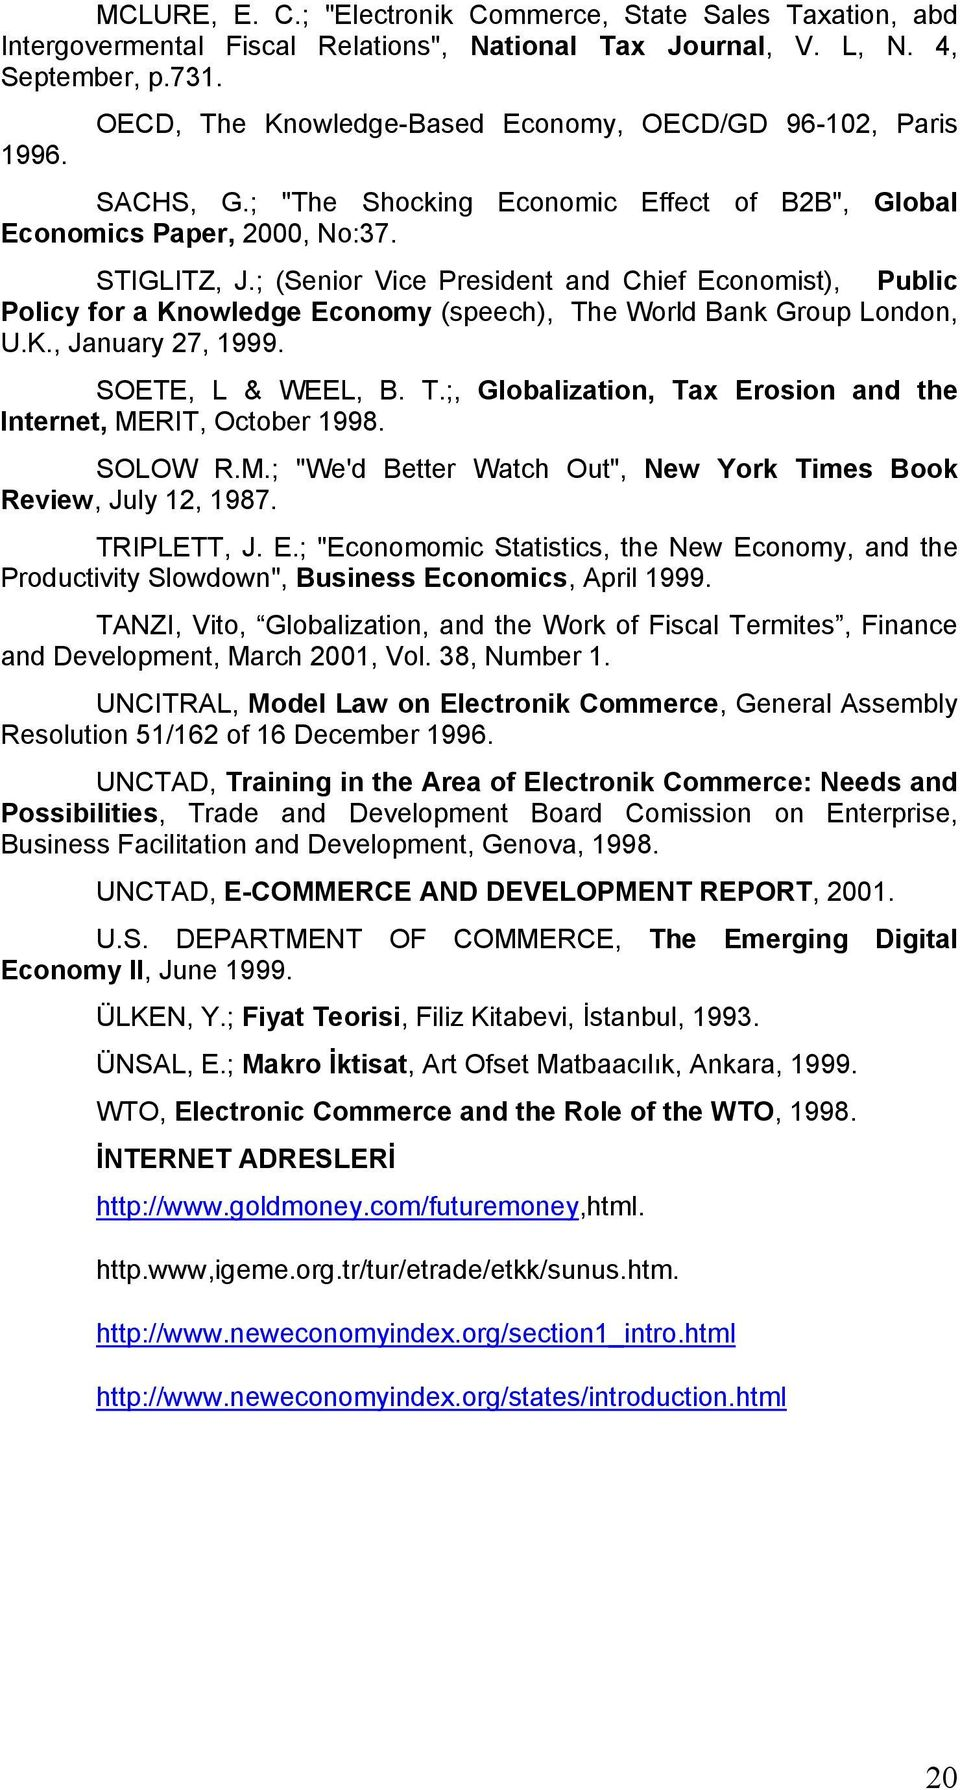 ; (Senior Vice President and Chief Economist), Public Policy for a Knowledge Economy (speech), The World Bank Group London, U.K., January 27, 1999. SOETE, L & WEEL, B. T.;, Globalization, Tax Erosion and the Internet, MERIT, October 1998.